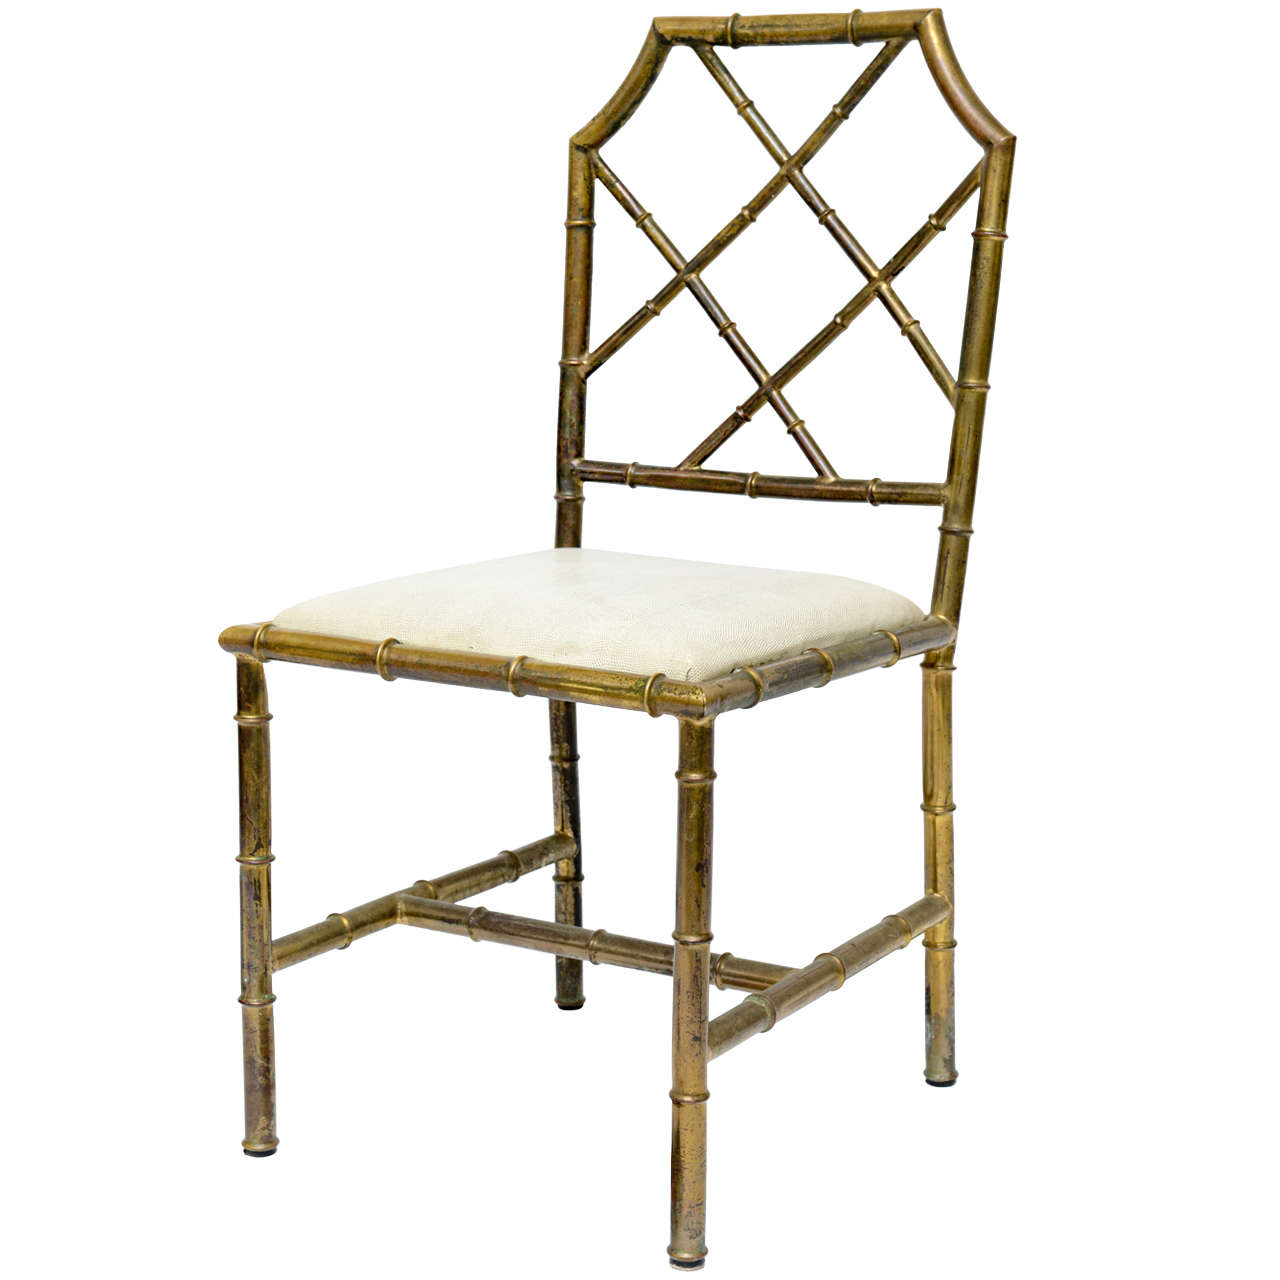 Italian Faux Bamboo Brass Chair At 1stdibs